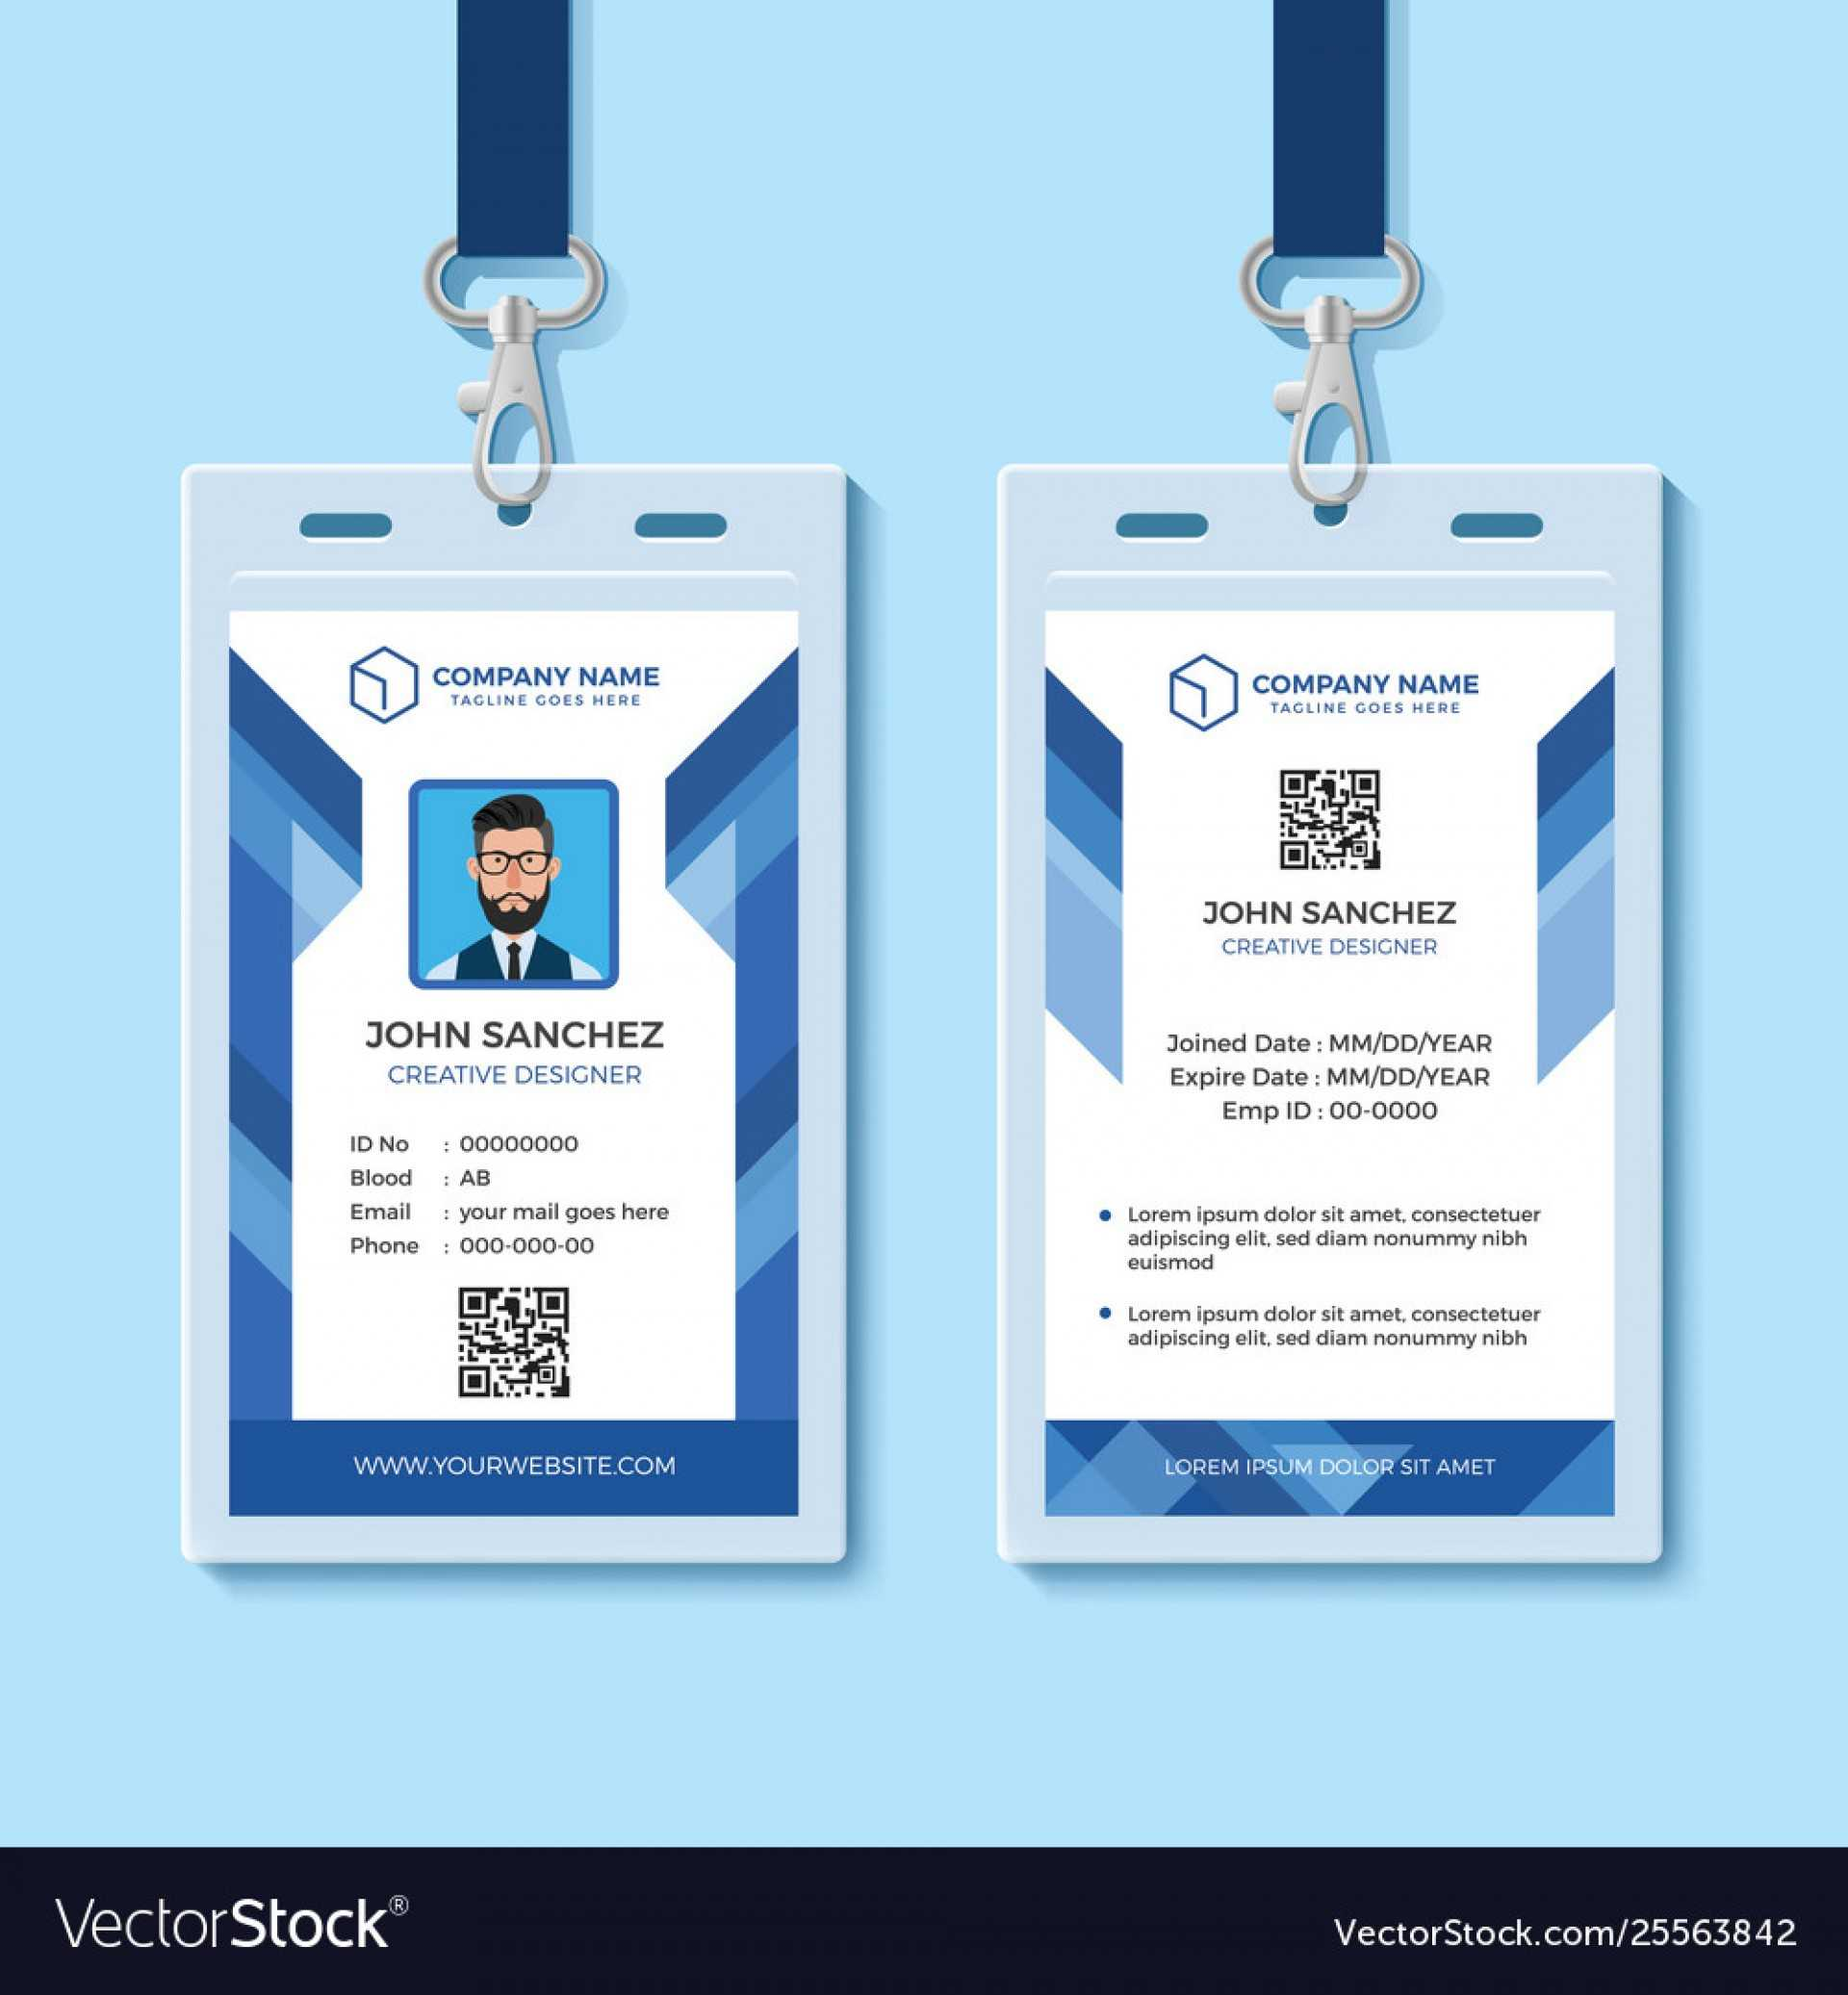 042 Template Ideas Employee Id Card Templates Blue Design Throughout Id Card Template Word Free